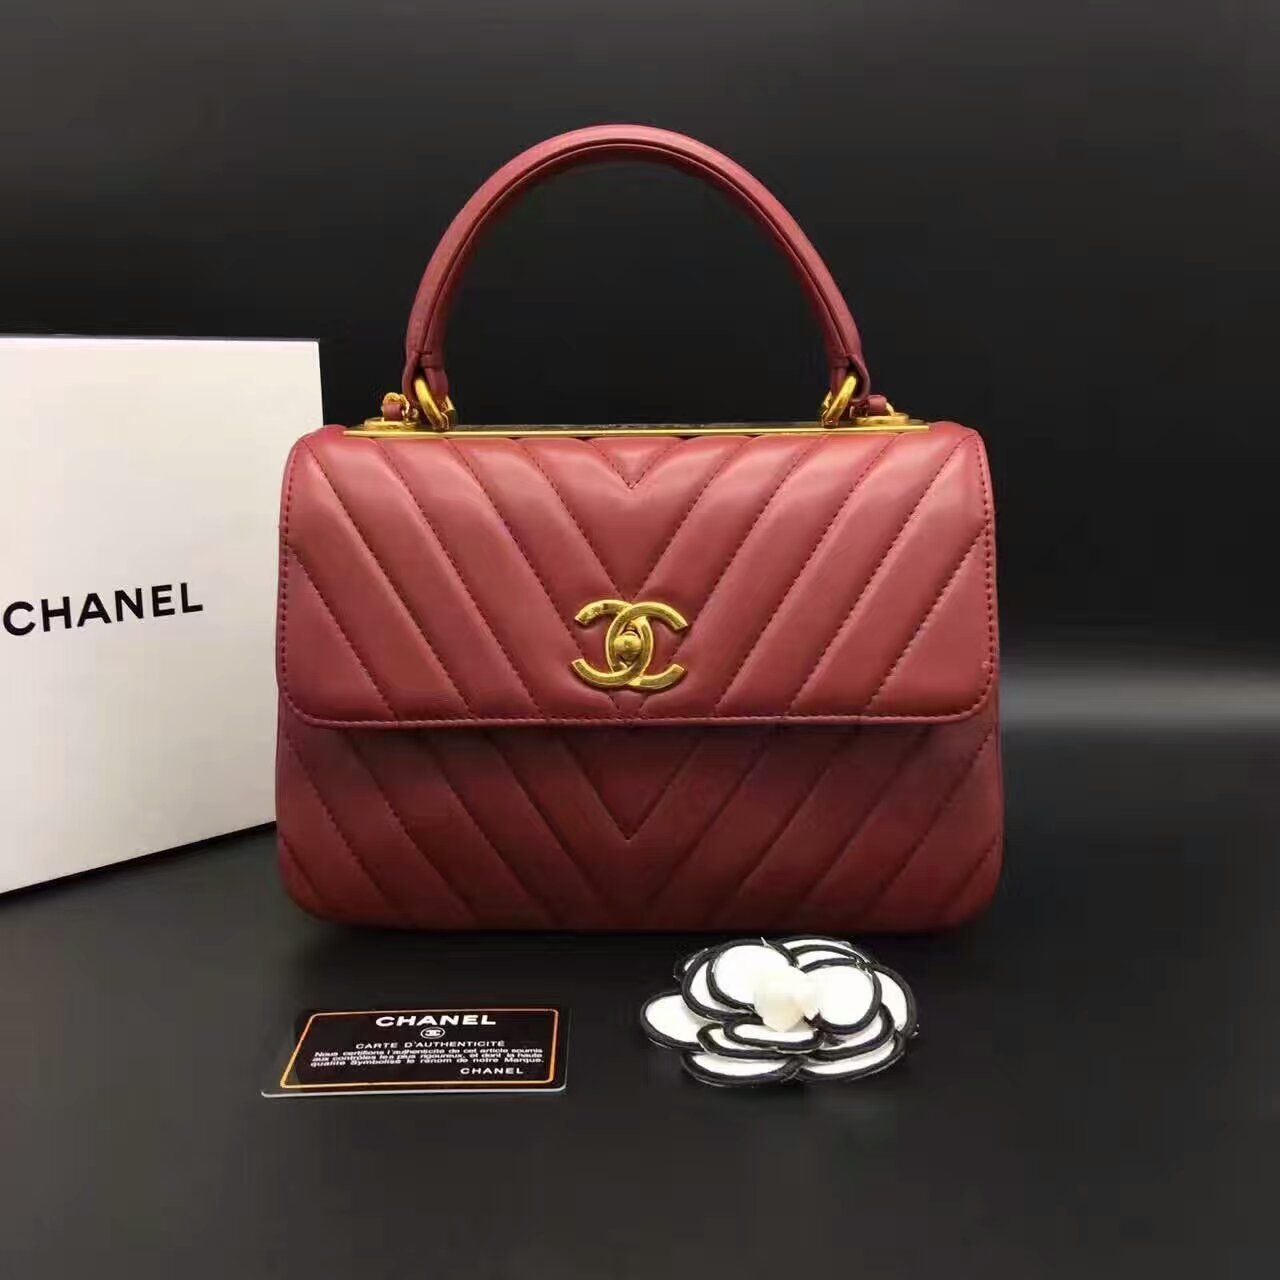 d08d323f0c98b9 Chanel Chevron Top Handle Bag Original Sheepskin Leather A92236 Burgundy  Whatsapp:+8615817091613 for more pics and other payment options.